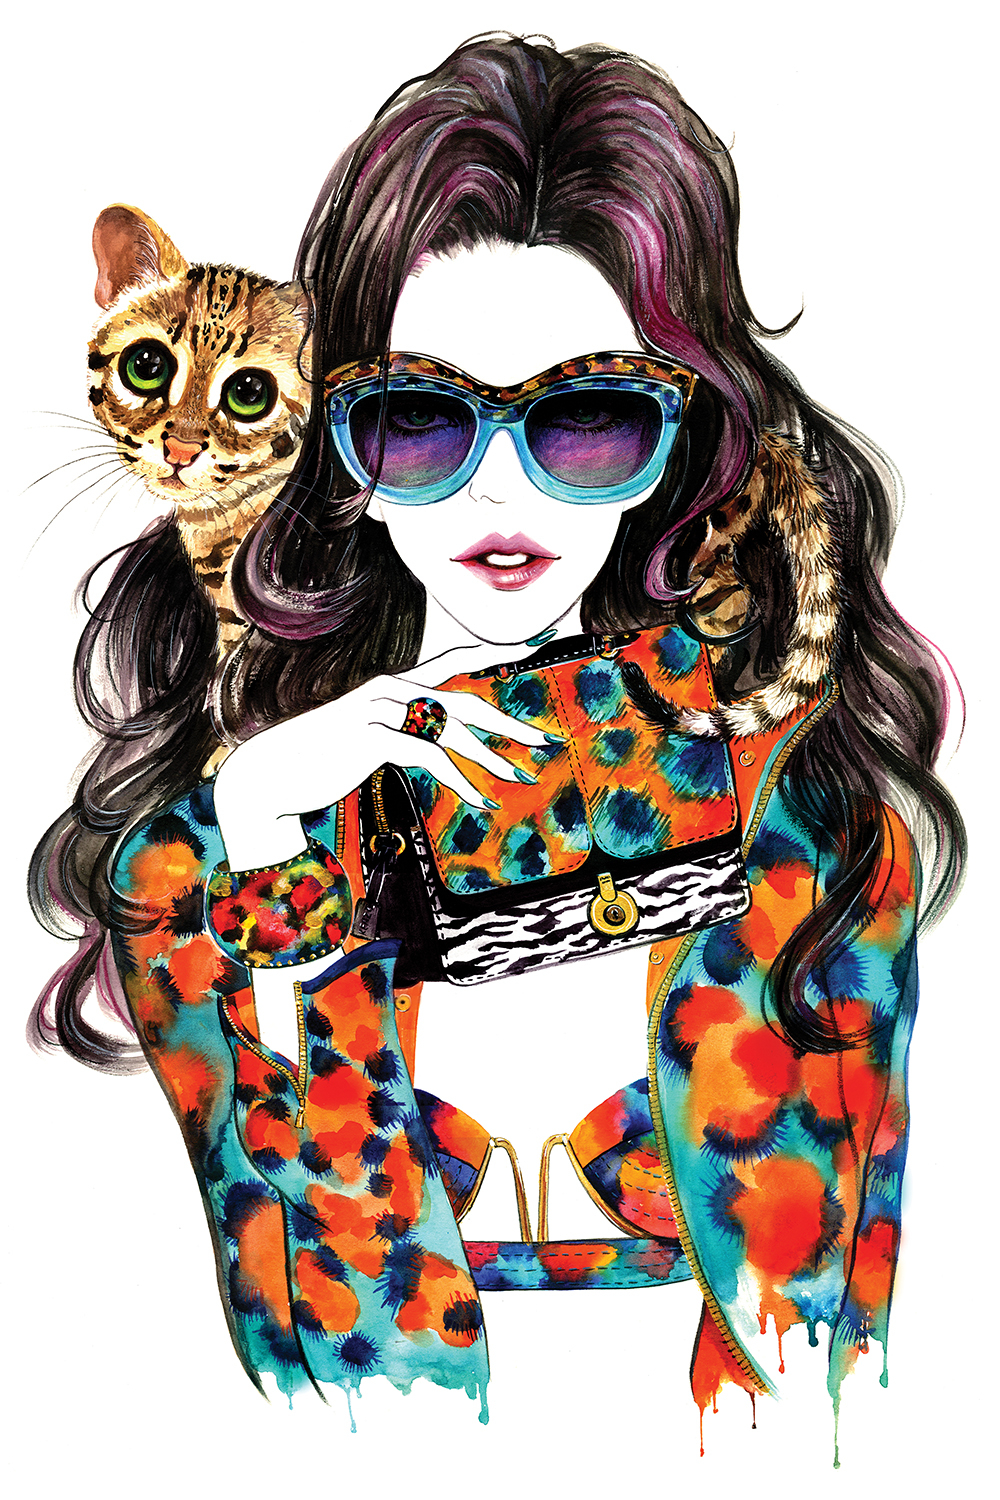 woman wearing large glasses with pink in hair and matching orange and blue patterned jacket, bra, ring, bracelet, and purse, with cat sitting on shoulder